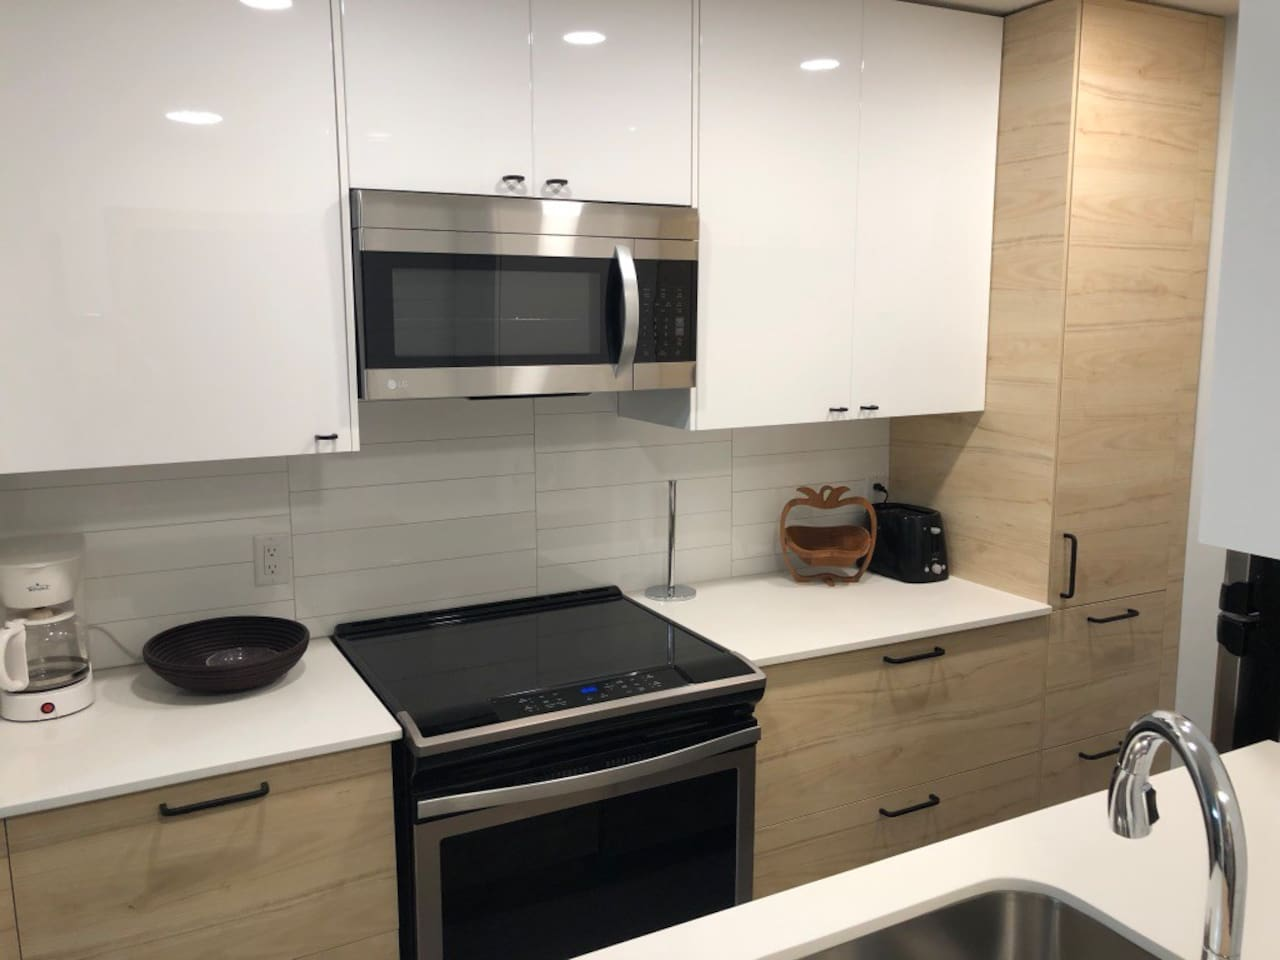 Kitchen, full renovation completed in November 2018